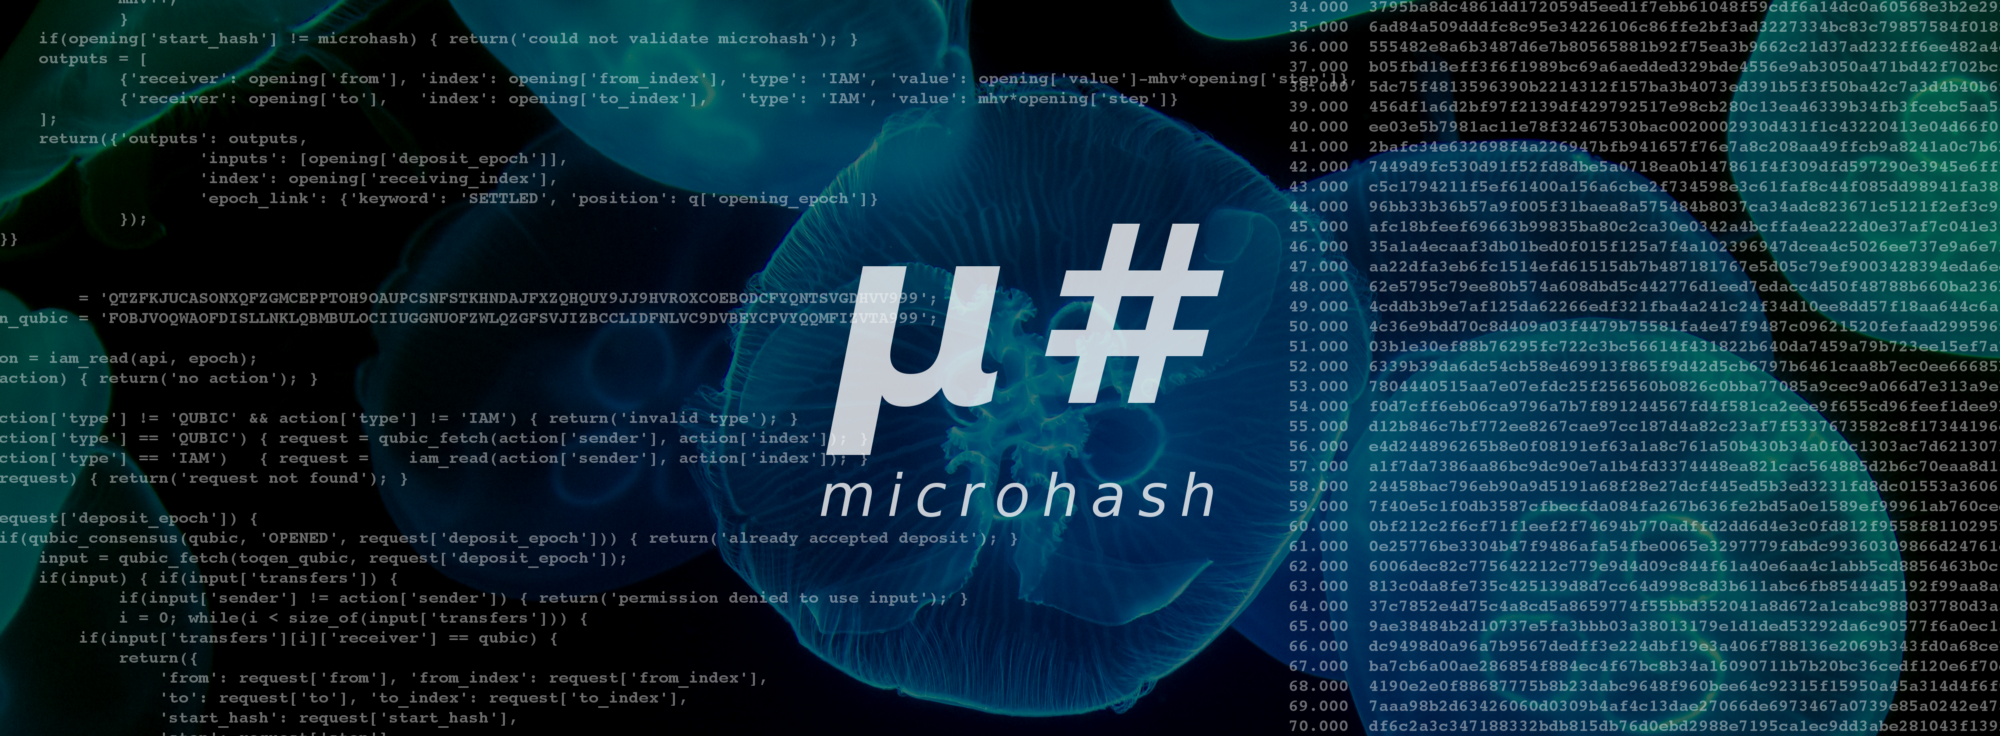 medium.com - MicroHash - First IOTA Smart Contract by Qubic Lite enables instant TOQEN Transfers via 'MicroHash Channels'